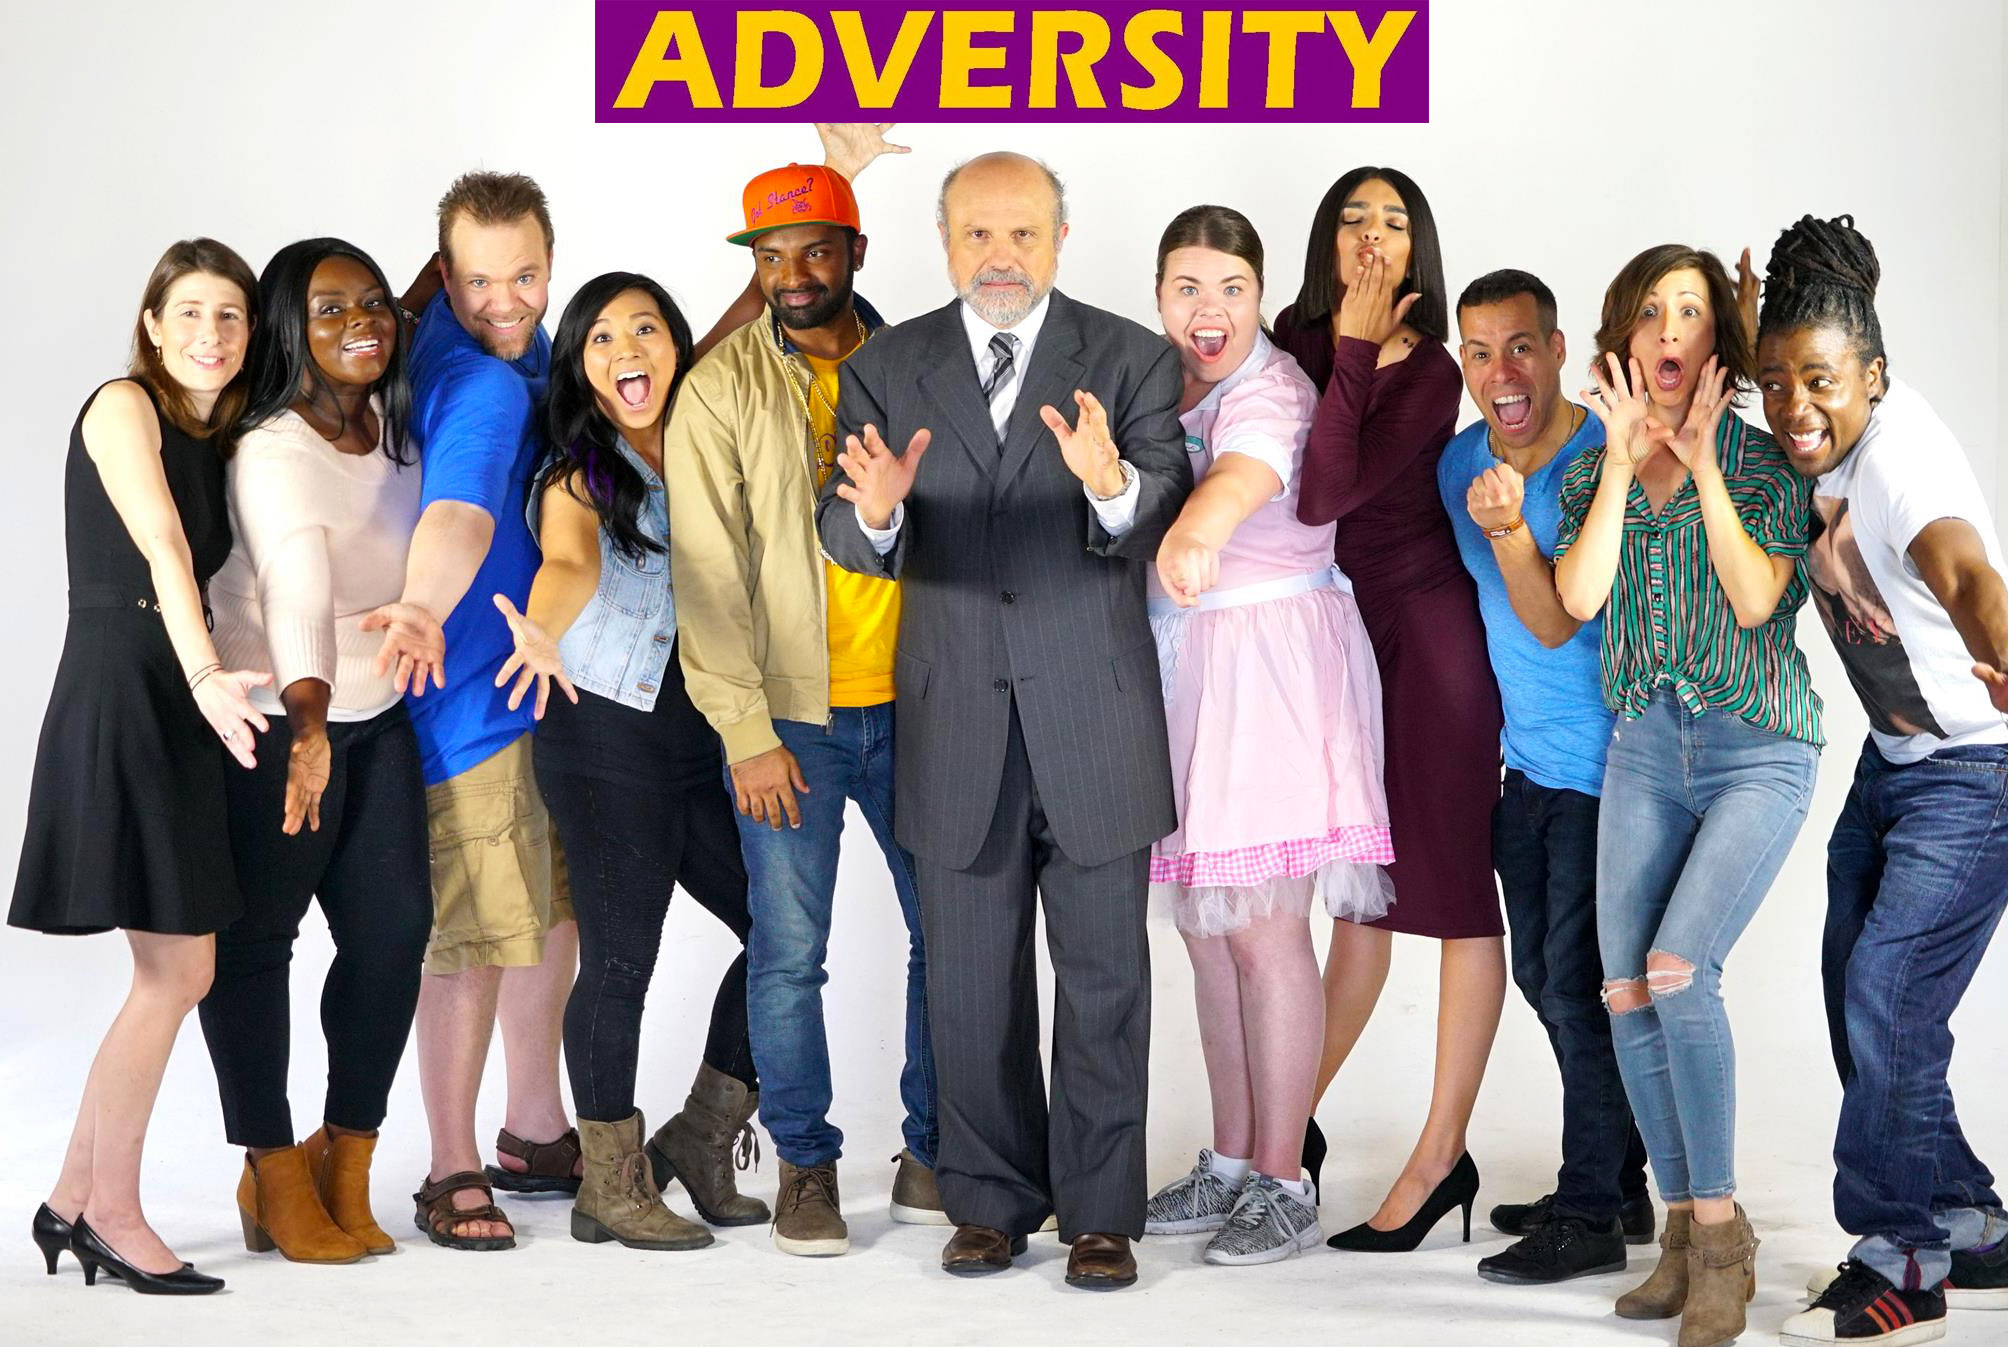 ADVERSITY (2018) - (TV Series/ Serie de Televisión)Credit: 1st Assistant DirectorGenre: Comedy.Director: Dwight F. Lay, Kenyetta Raelyn and Adrienne LevySynopsis:Eight writers in a TV network diversity program, vie for a job, while being led by a racist, washed-up TV exec left over from the days before cable.Country: USA